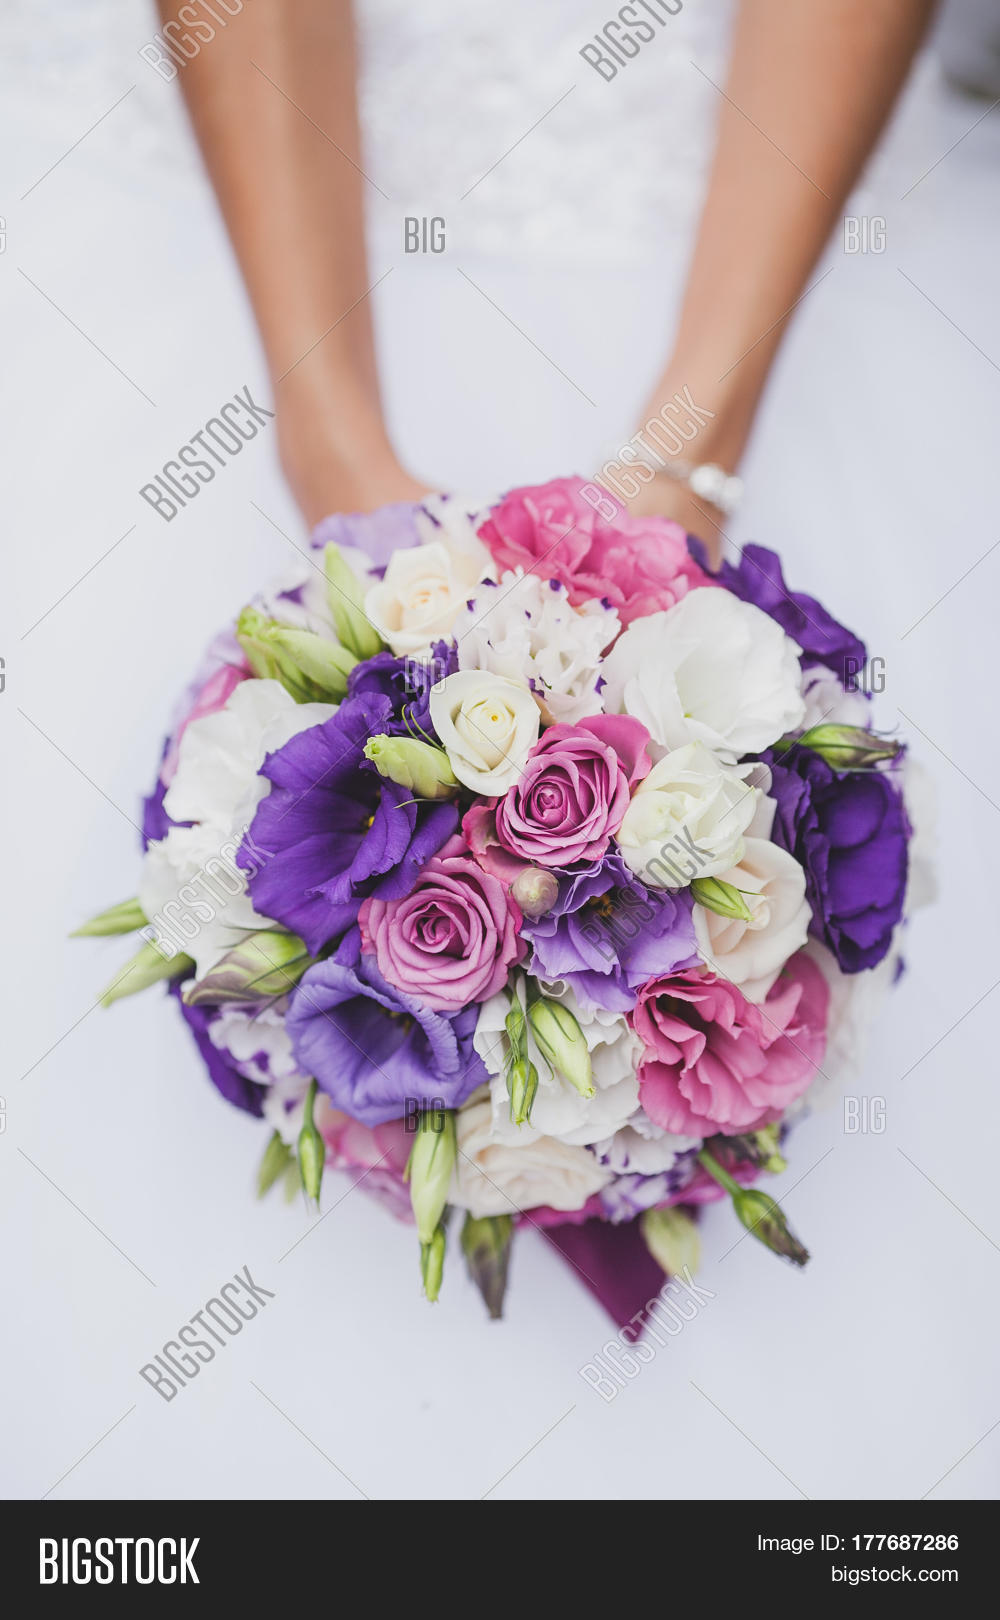 Bride white wedding image photo free trial bigstock bride in a white wedding dress holding a flowers bouquet from purple rose in hands mightylinksfo